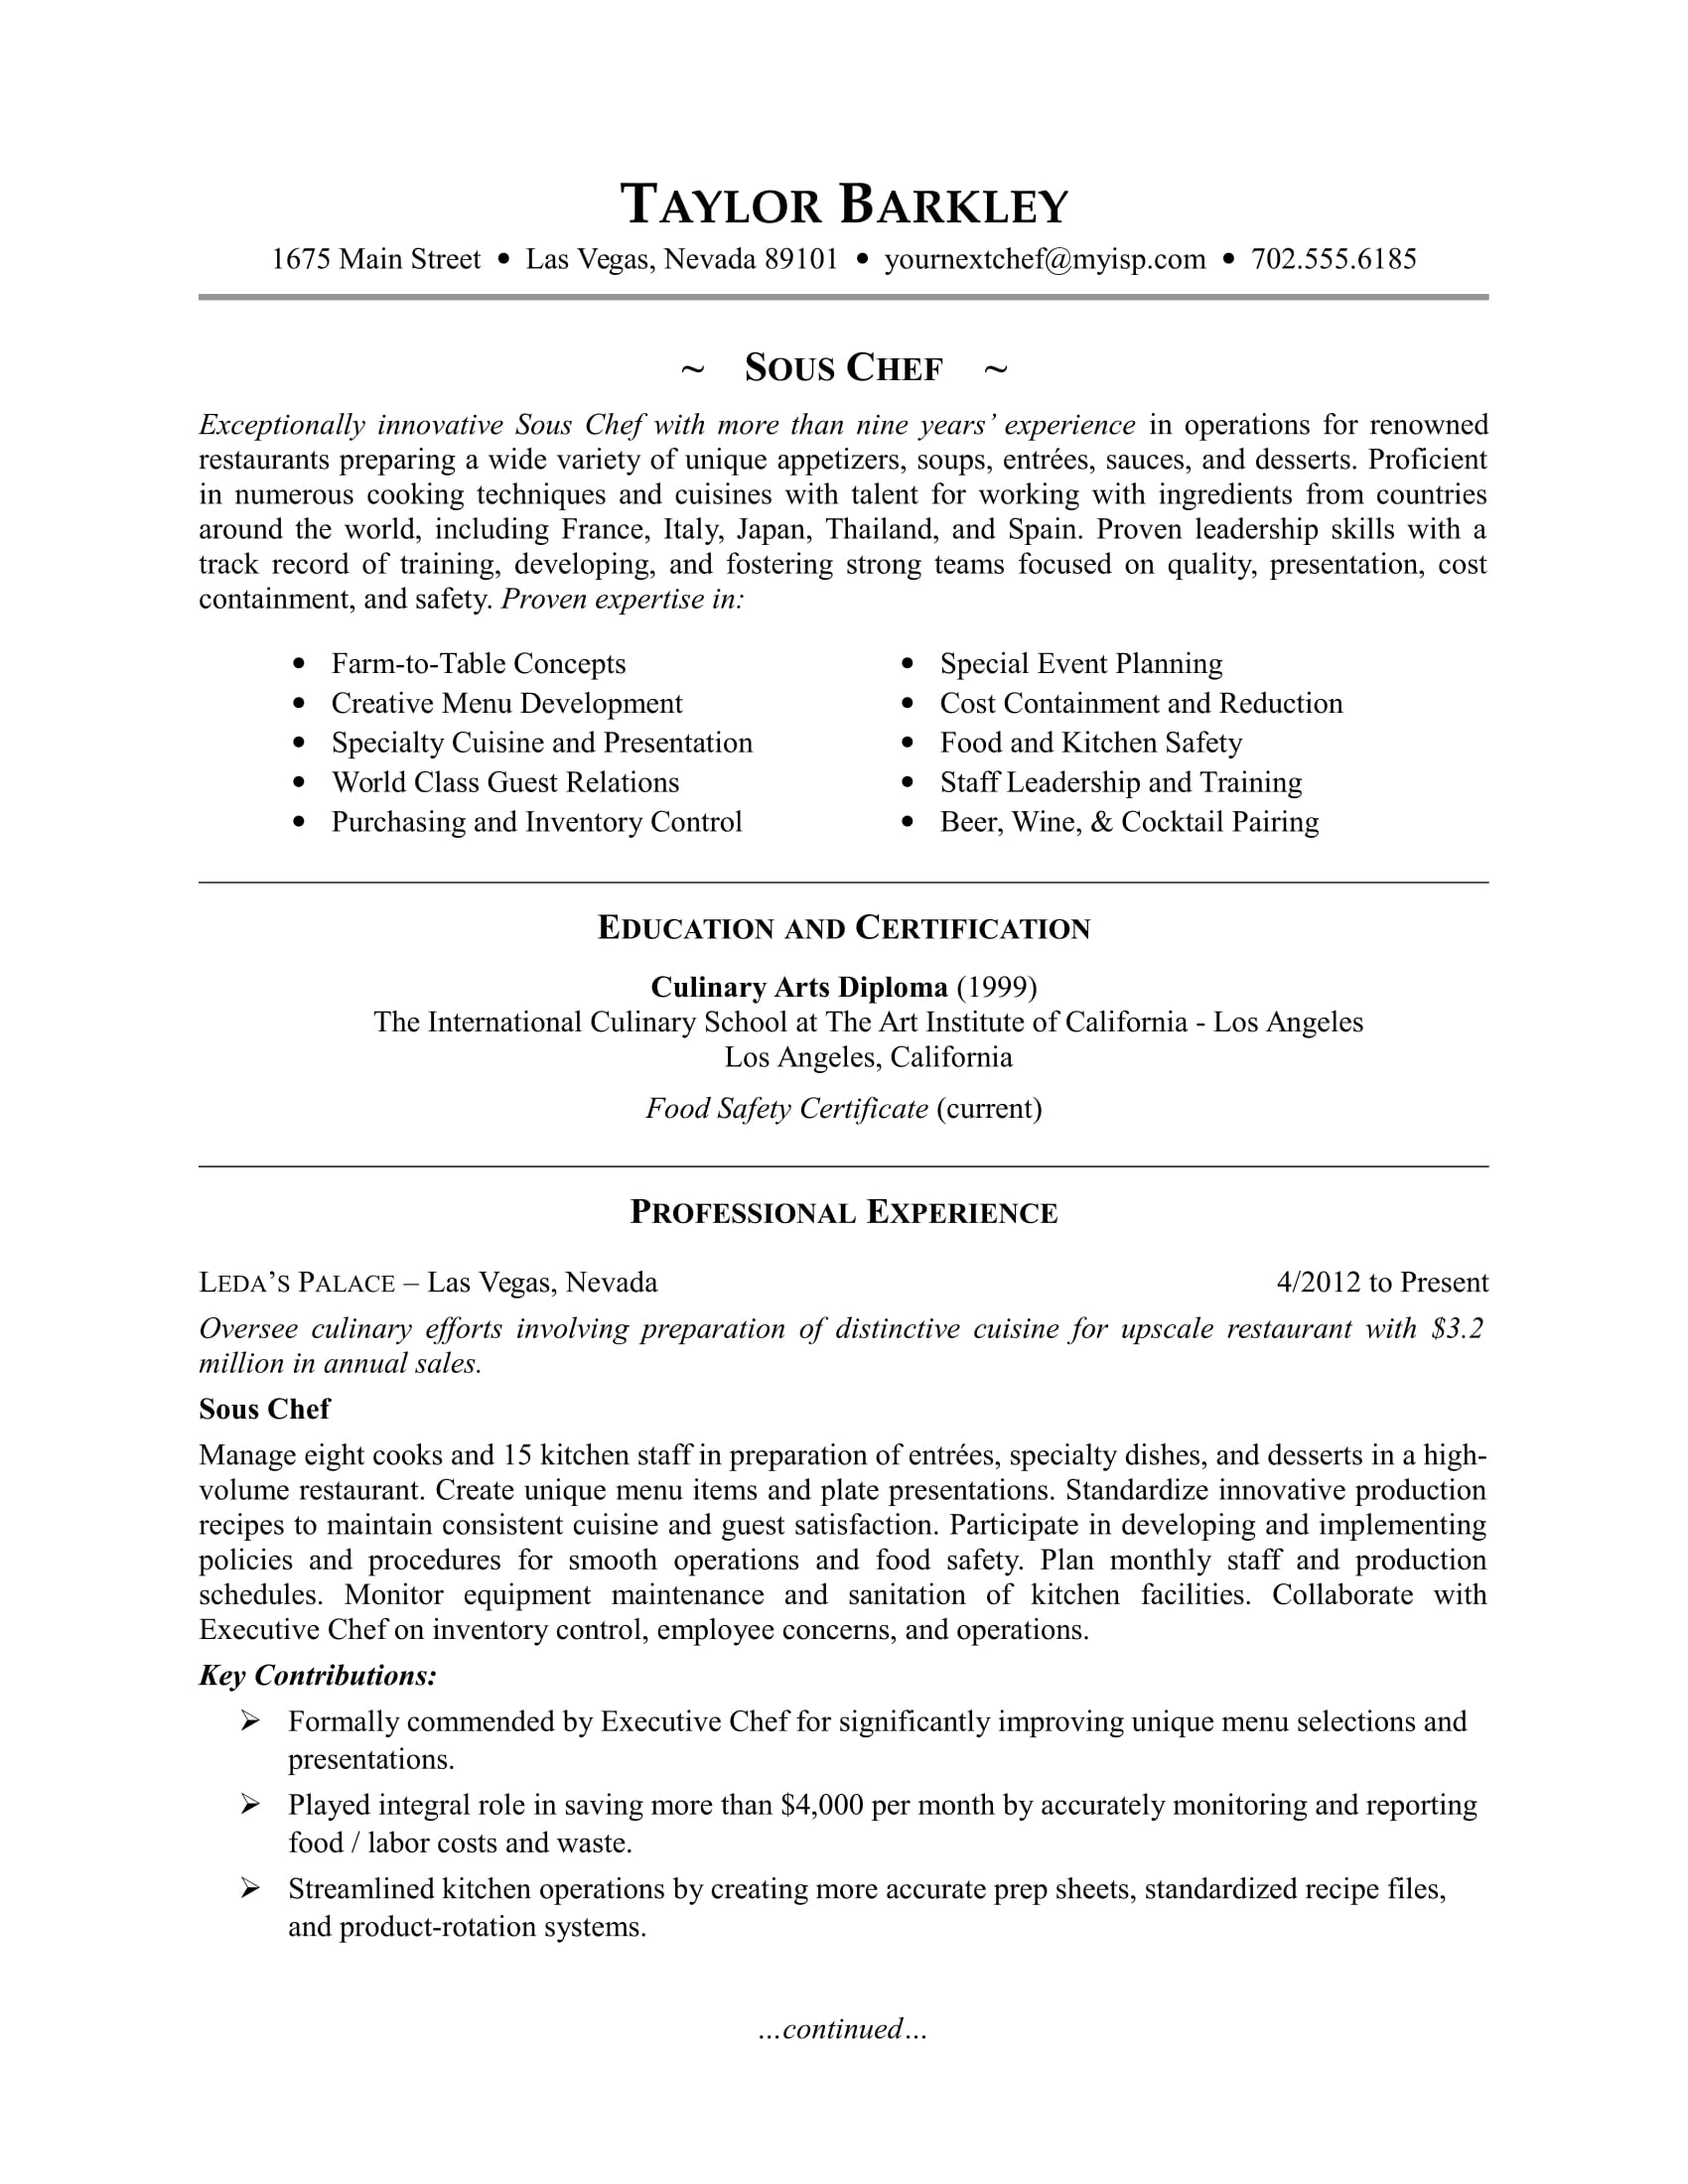 template resume espanol